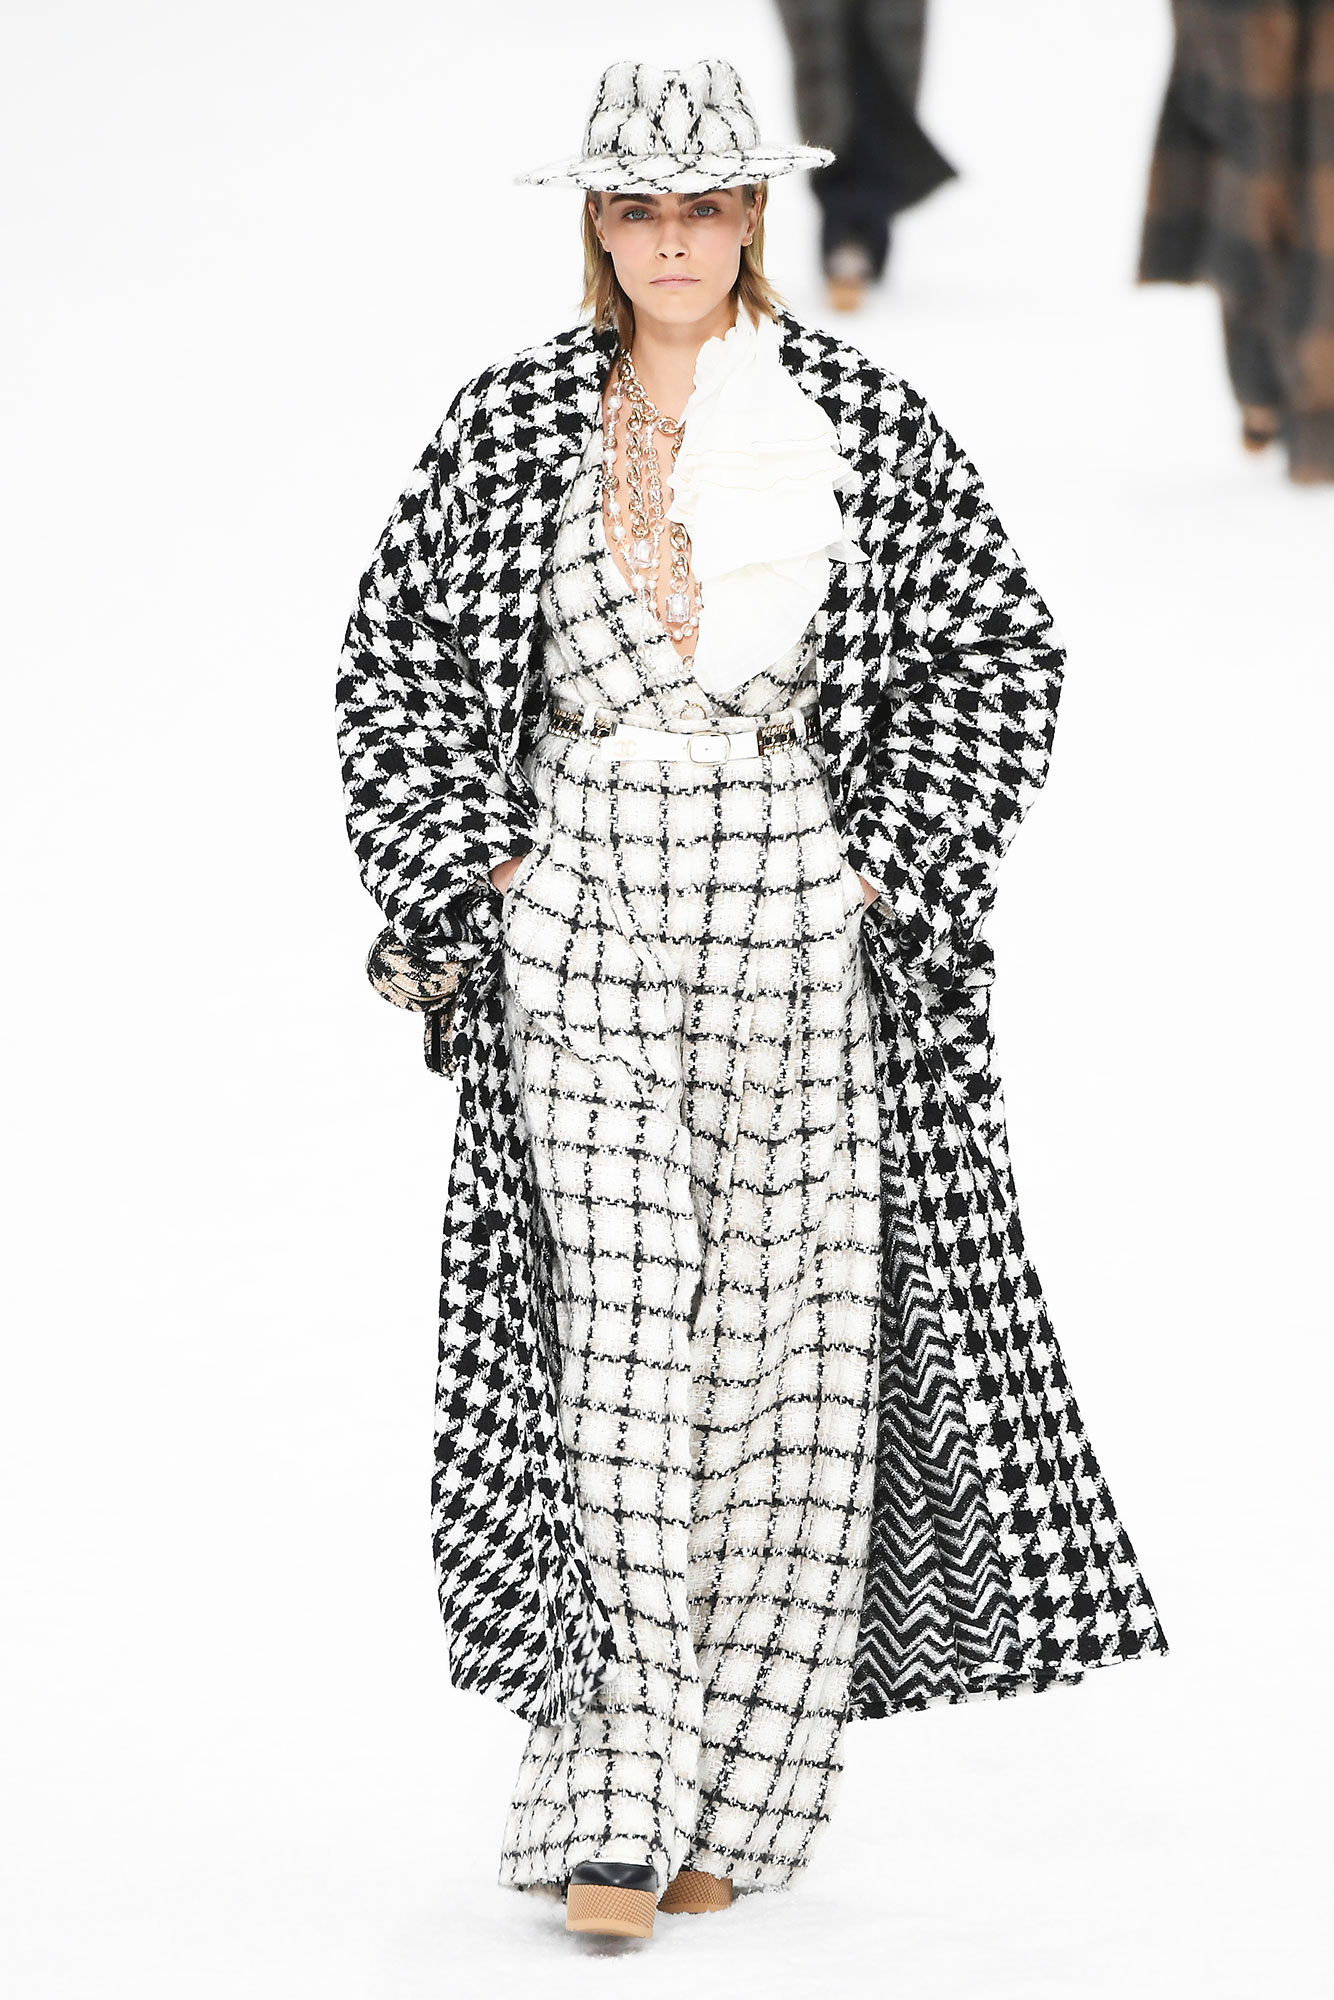 Karl Lagerfeld's Final Runway Was a Star-Studded Tribute to the Late Designer - To kick off the show, the British beauty wore a wide-leg checkered jumpsuit with a matching hat and houndstooth coat, all in shades of black and white.